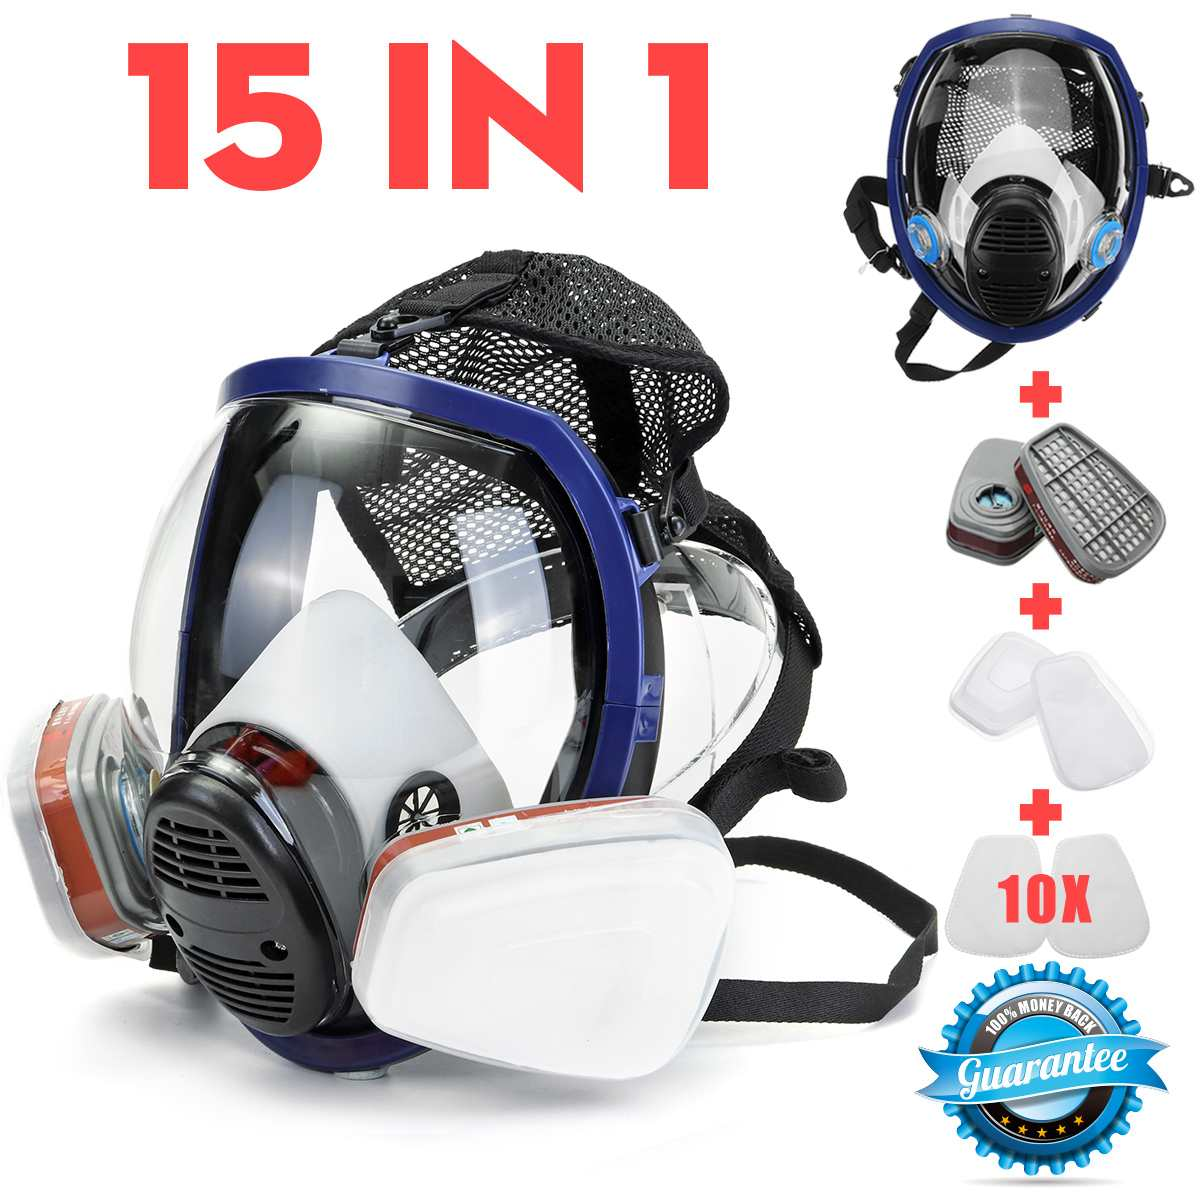 15 in 1 Full Face Gas Mask For-3M <font><b>6800</b></font> Face piece Respirator Painting Spraying Mask Chemical Laboratory Medical Safety Mask image